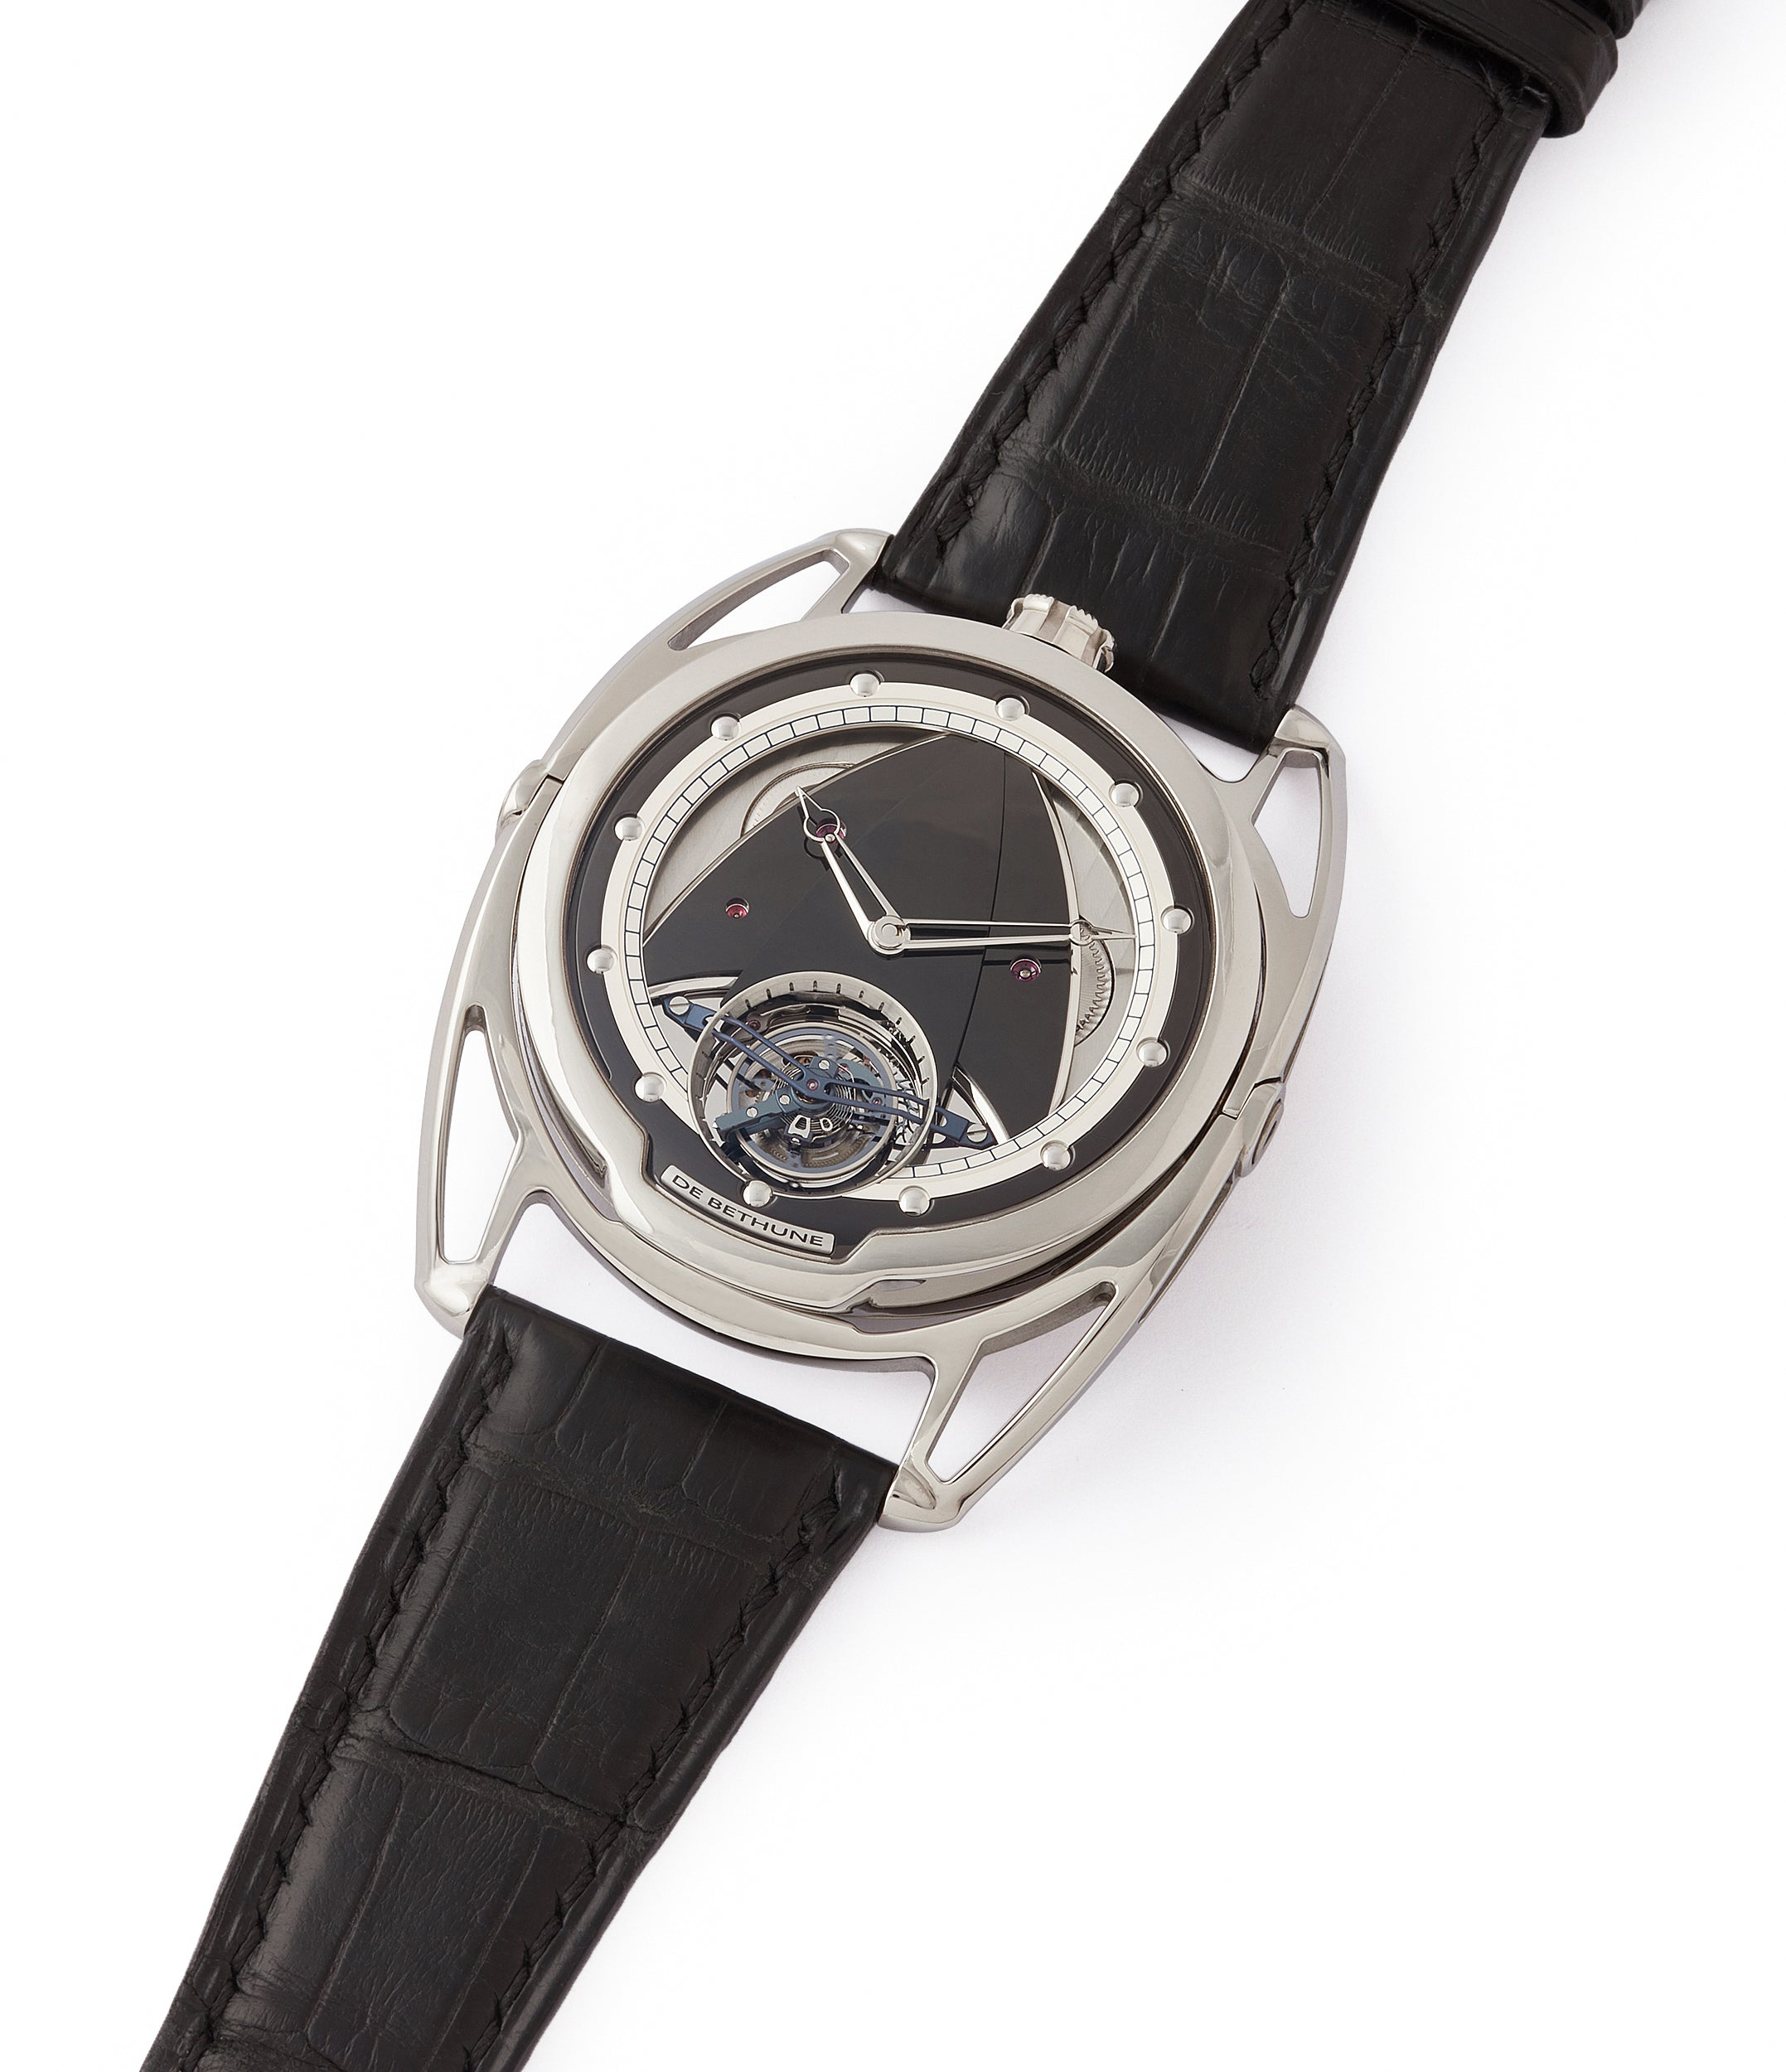 for sale De Bethune DB28T tourbillon titanium time-only watch from independent watchmaker for sale online at A Collected Man London UK specialist of rare watches